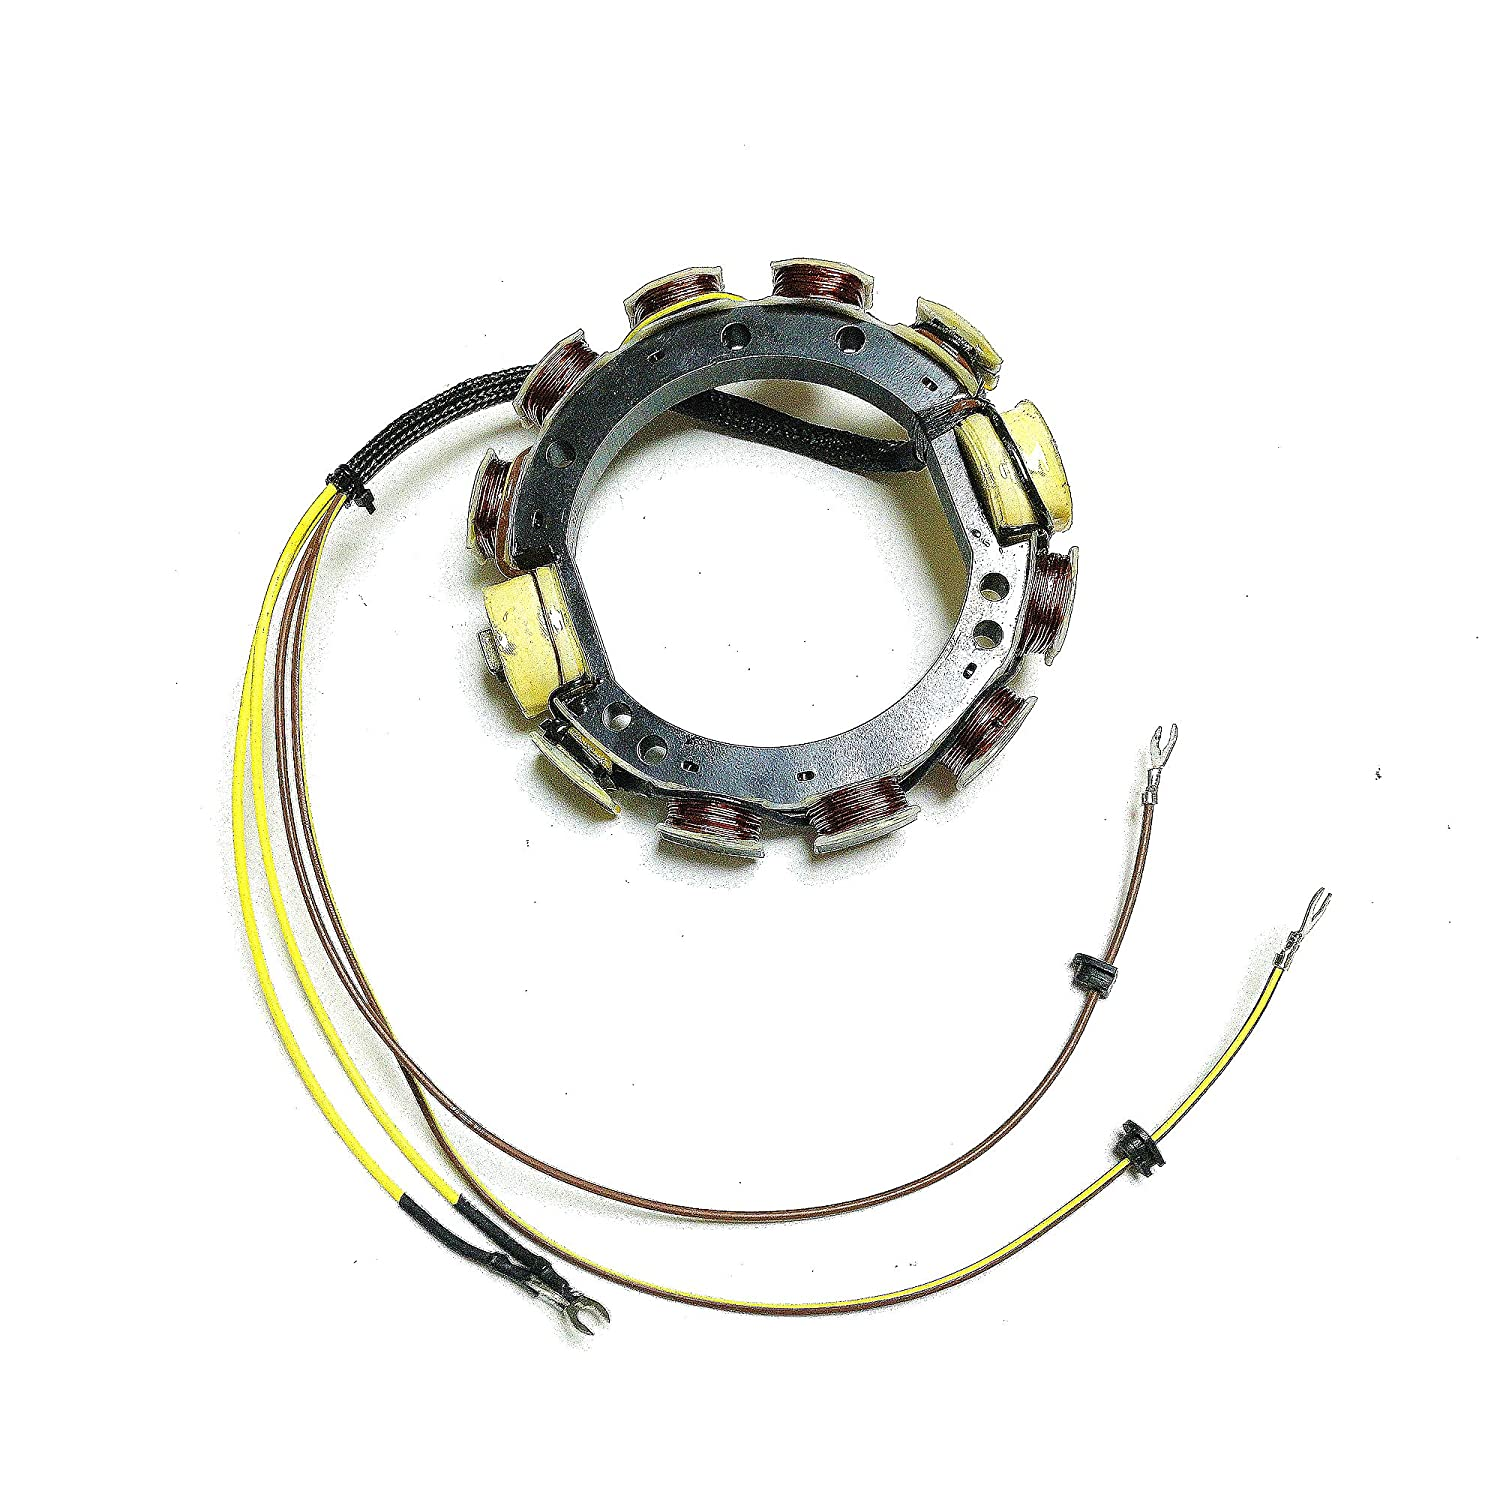 Jetunit Outboard Stator 12AMP 4Cyl For Johnson Evinrude 581680 582099 581303 581860 173-2099 85-140HP 1973-1977